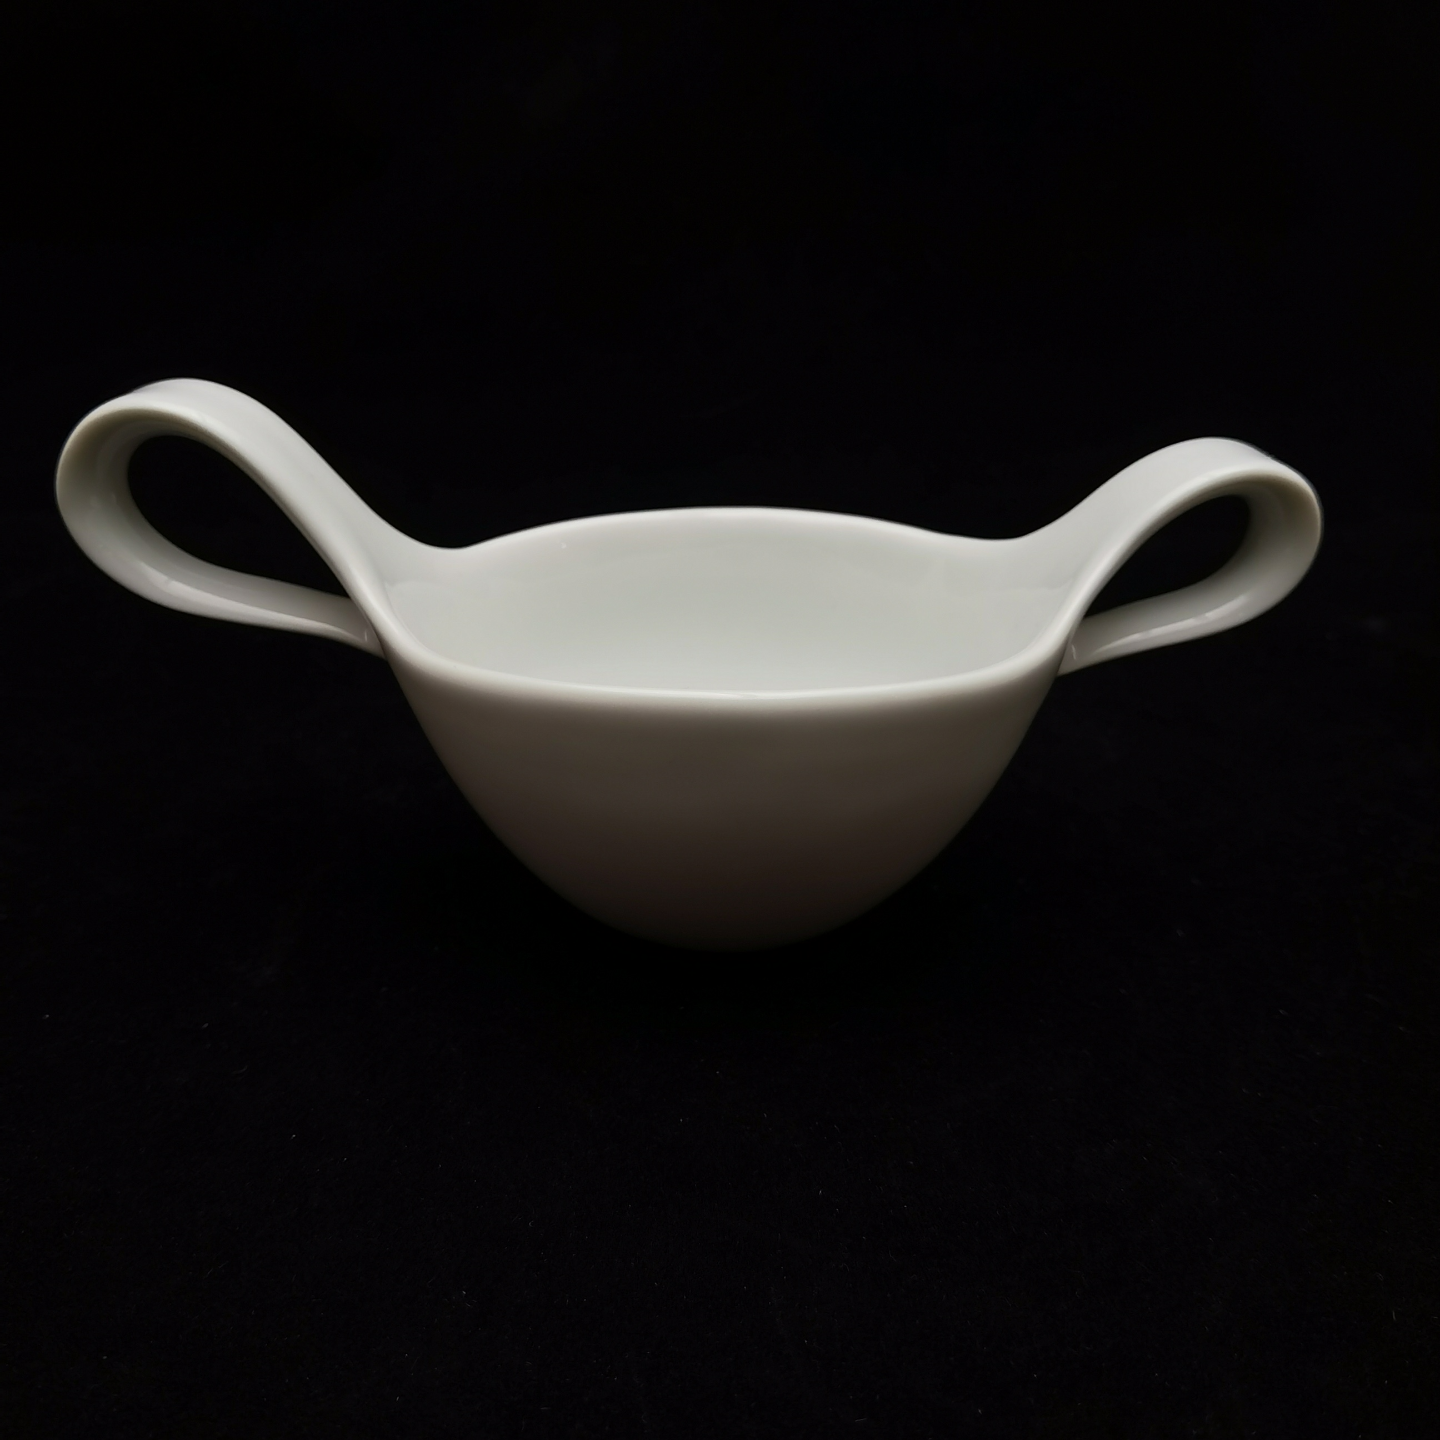 Green White Ladle Cup Six Forms - Single Cup S4